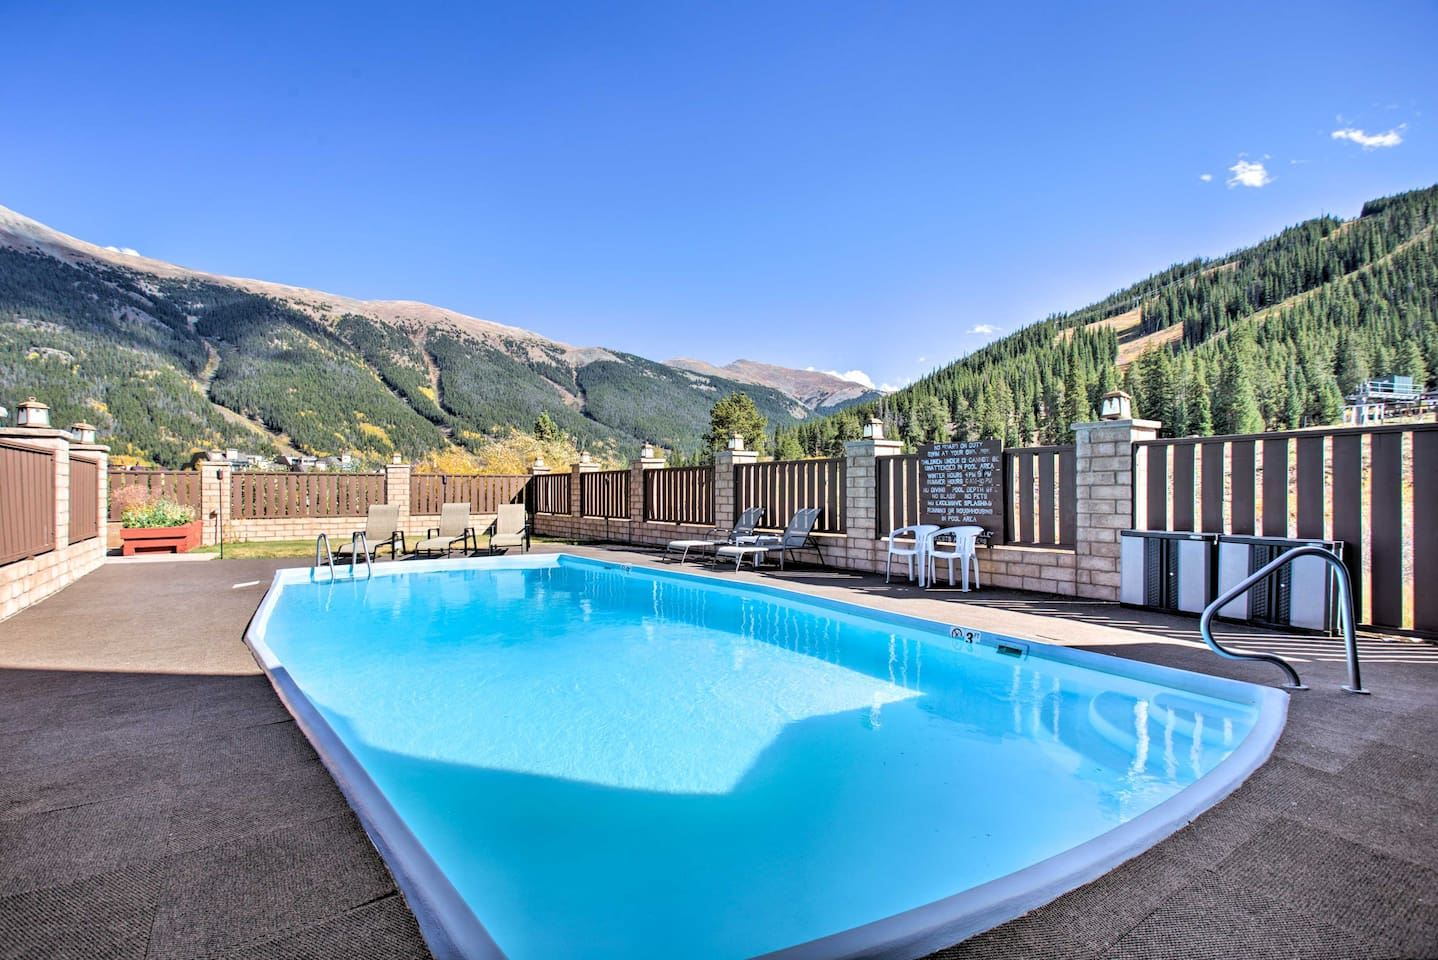 Enjoy the view and splash around in Copper's only year-round heated slopeside pool!